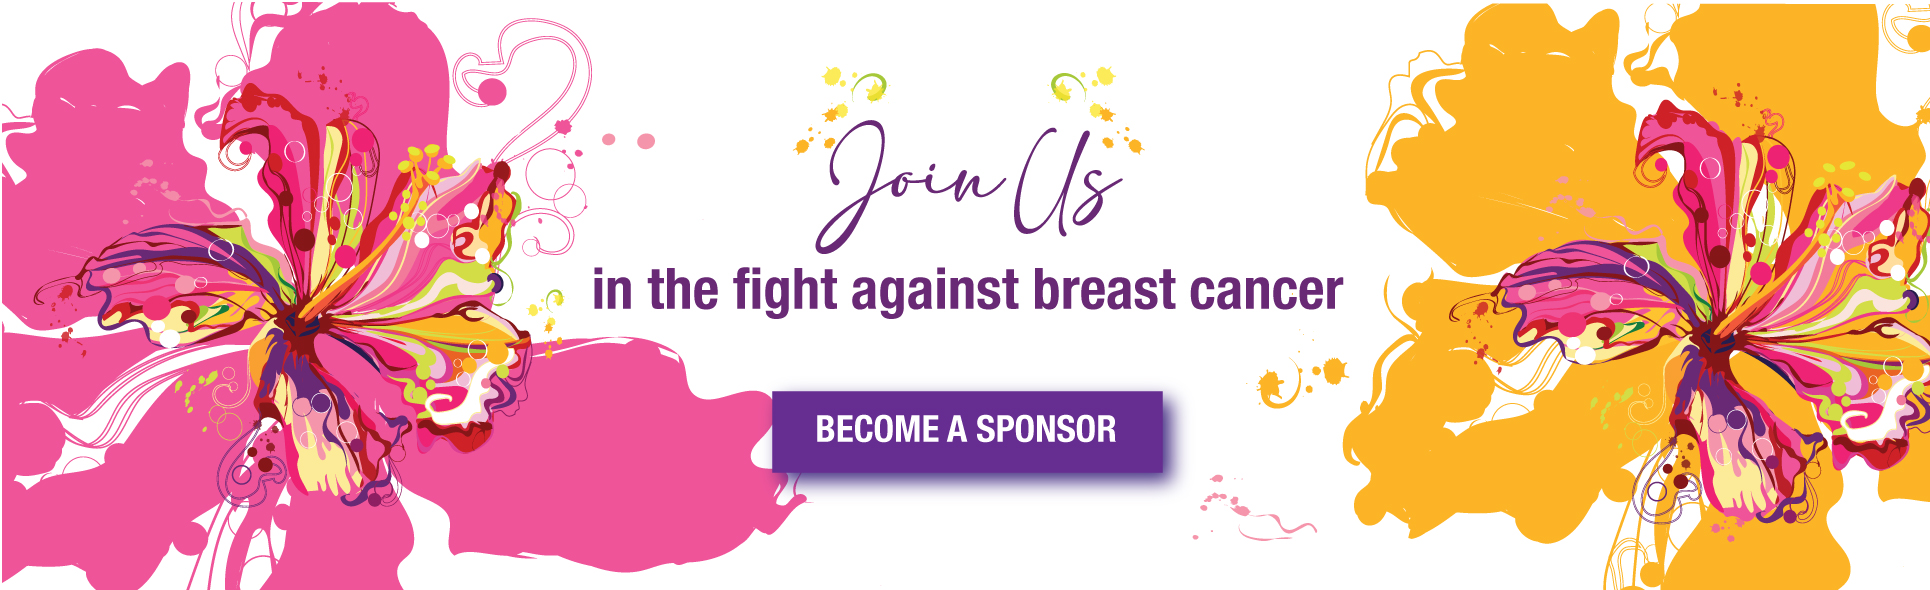 Join us in the fight against breast cancer. Become a sponsor.